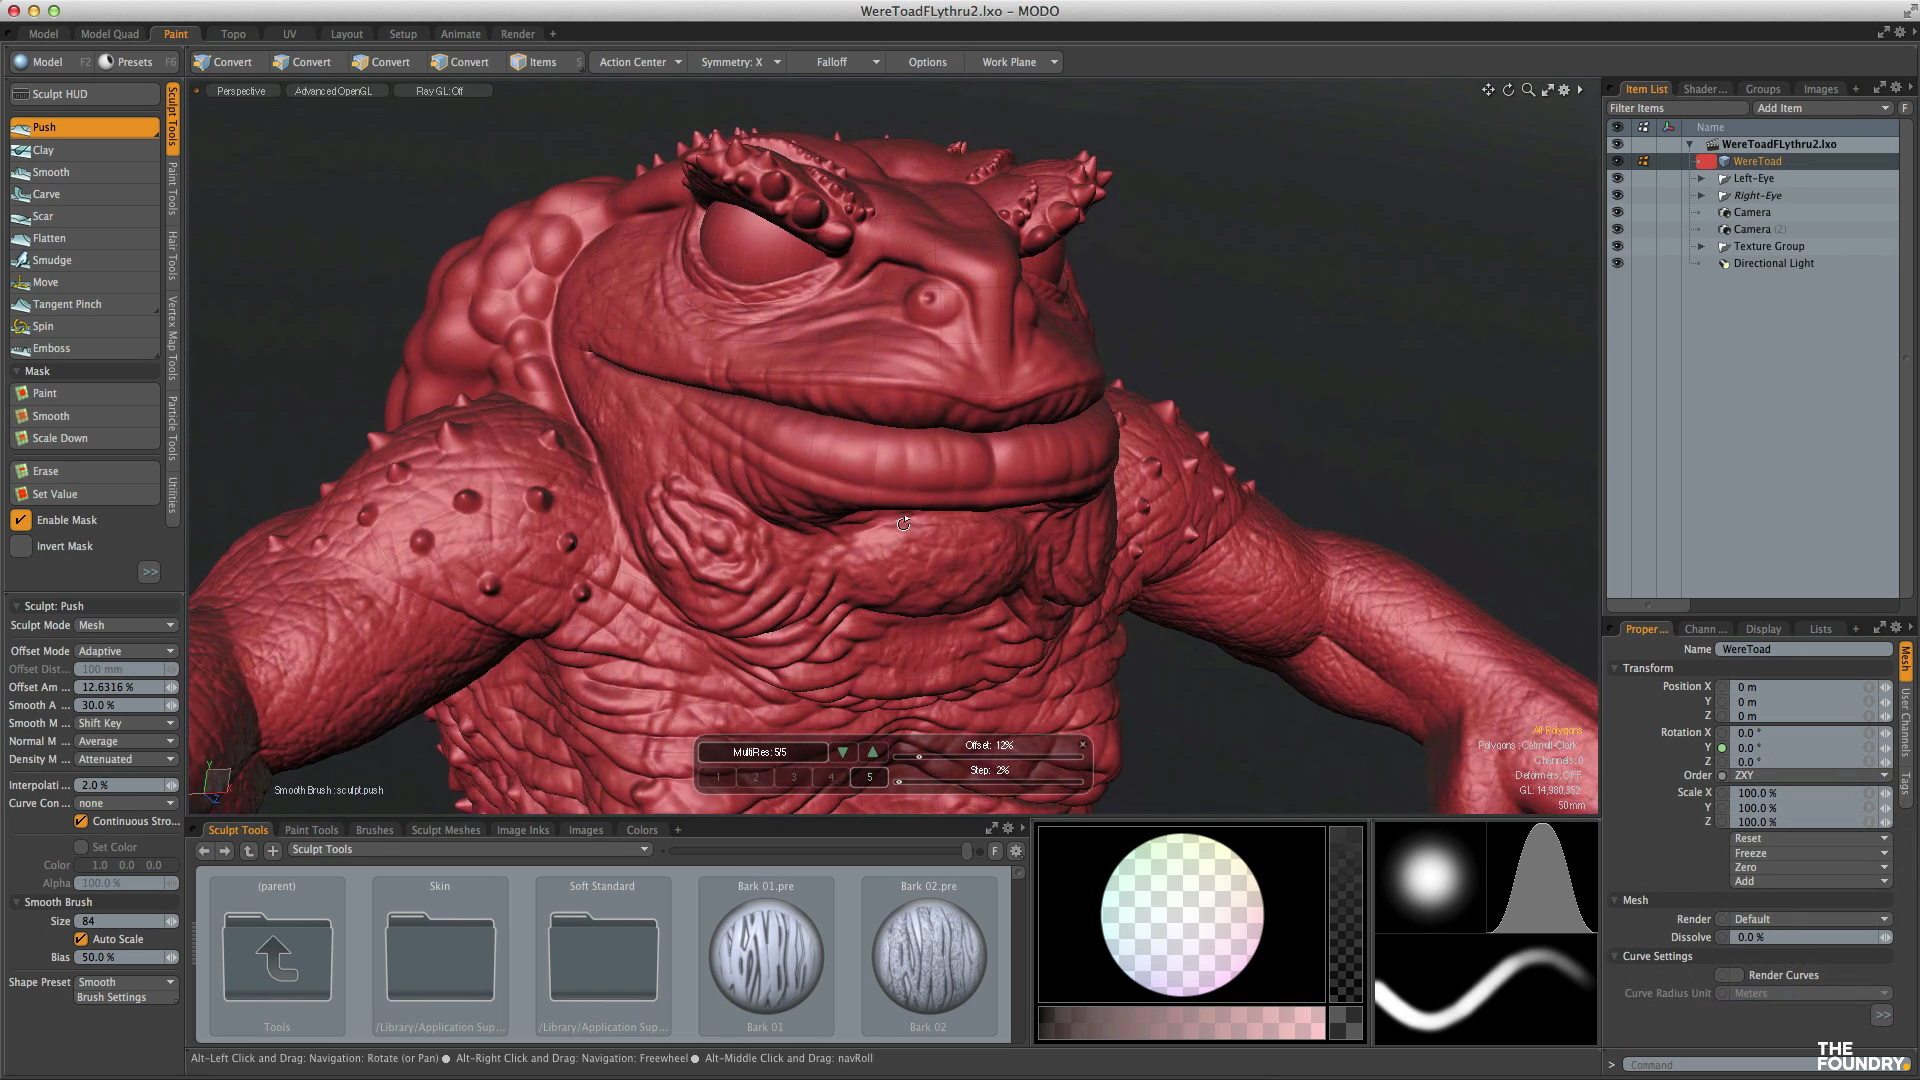 The foundry discloses more information on modo 901 cgpress.